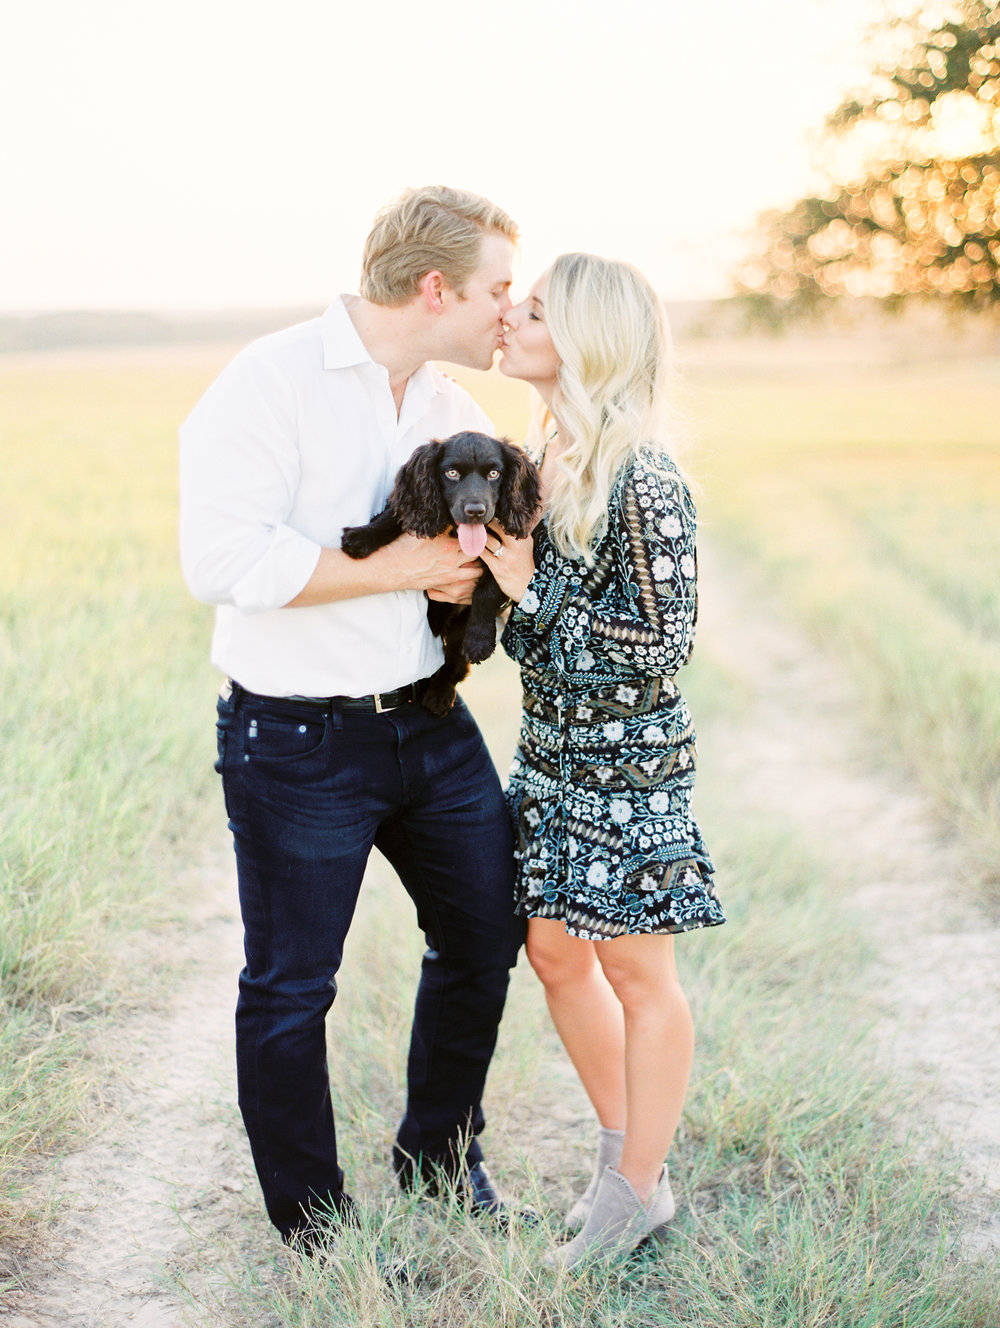 Lauren+John+Engaged+TX-37.jpg